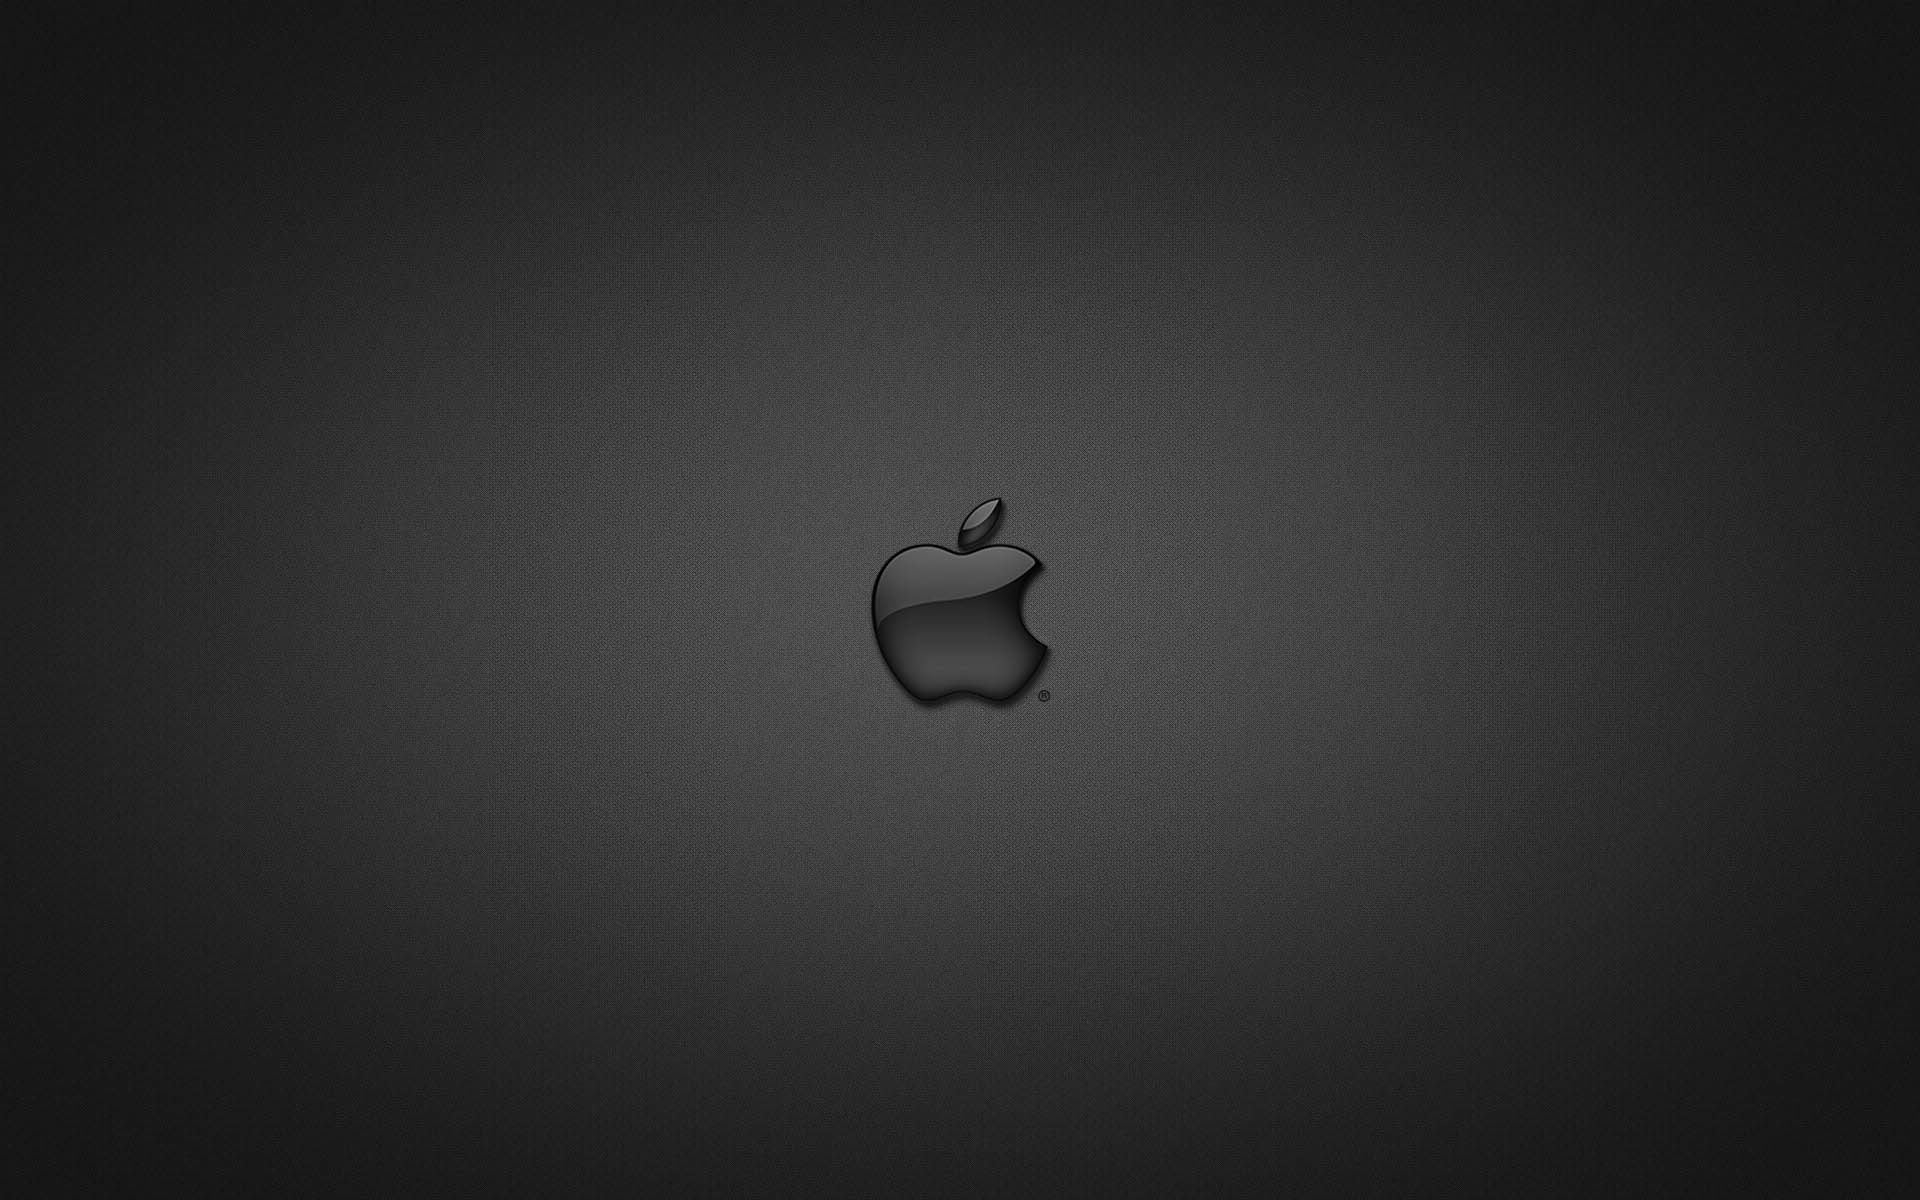 Apple in Glass Black 1482.37 Kb